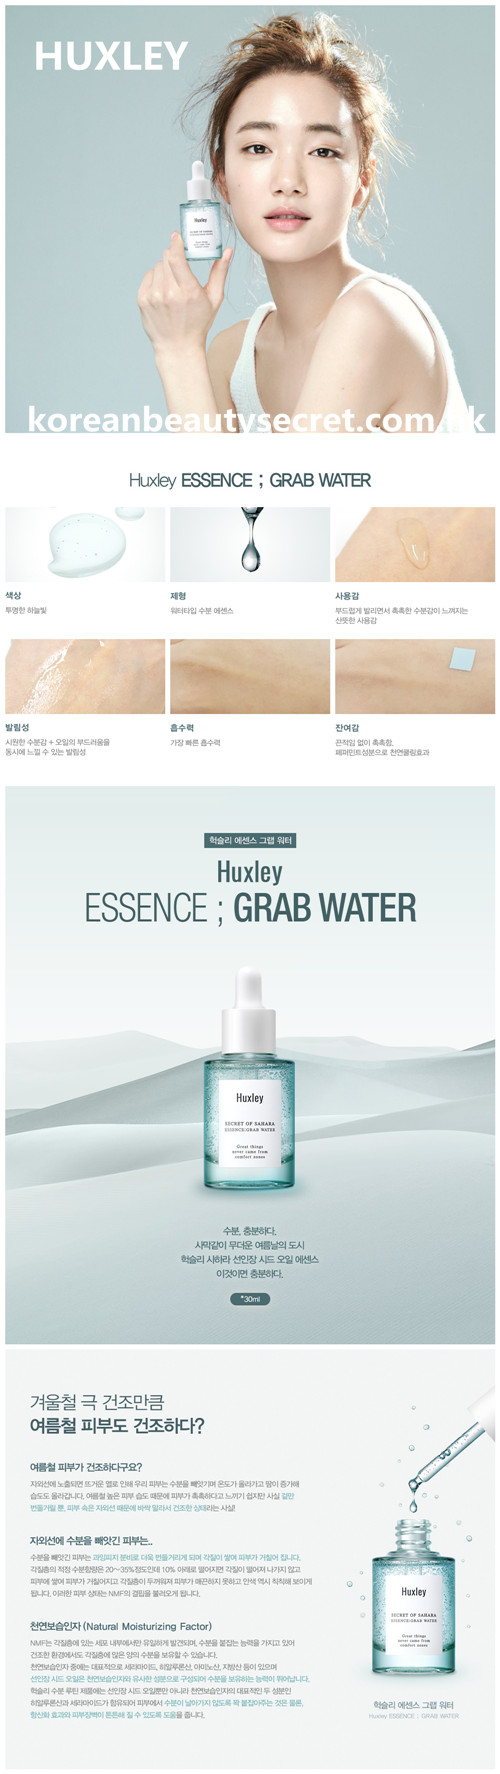 Huxley Secret of Sahara Essence Grab Water 極緻水感清爽精華